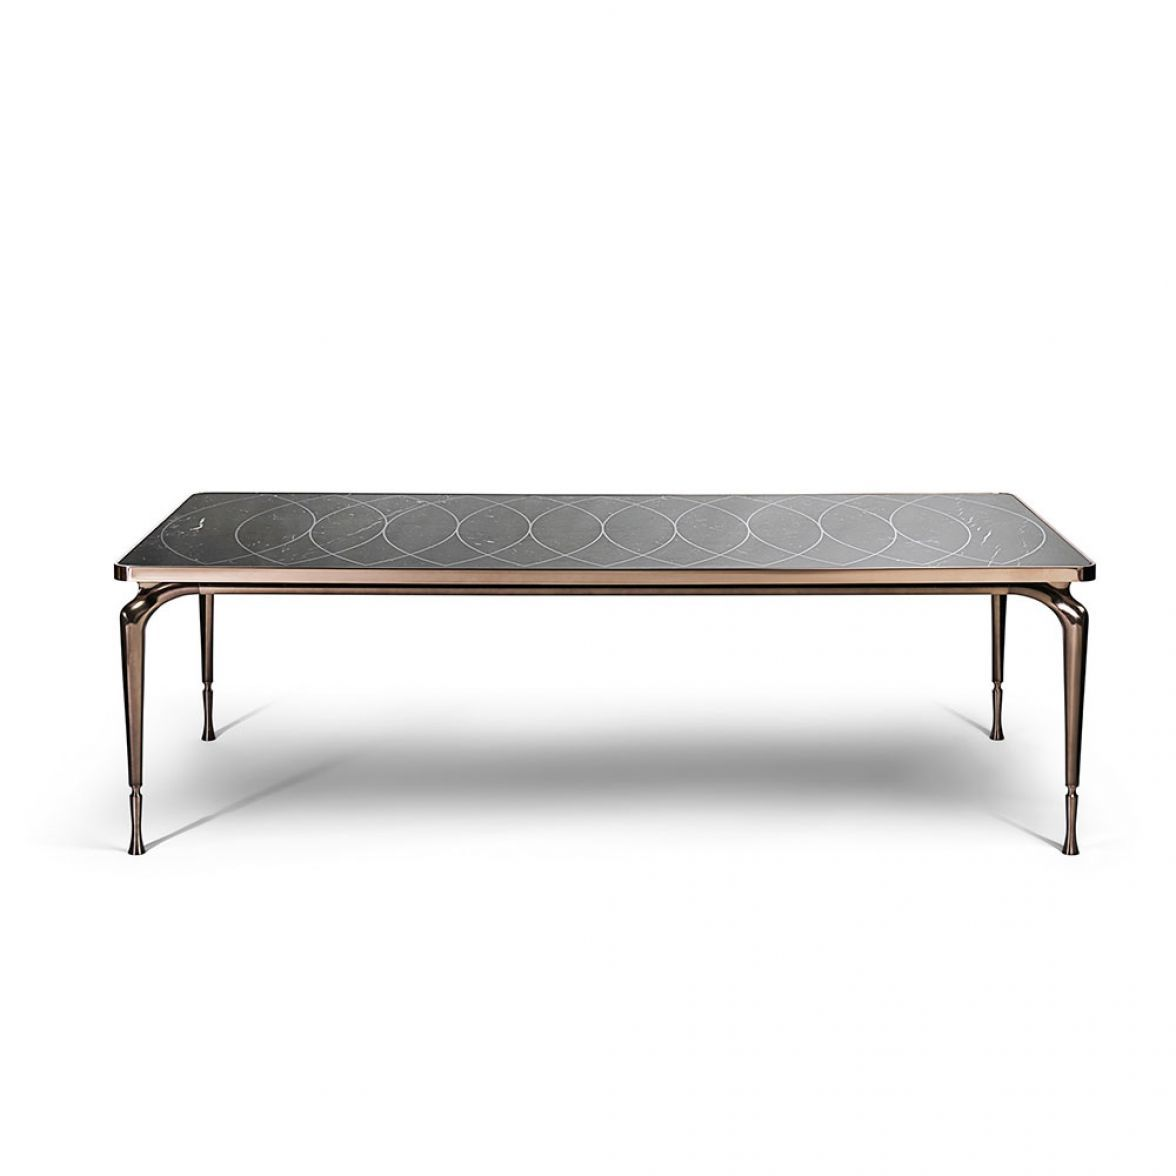 Thule dining table фото цена